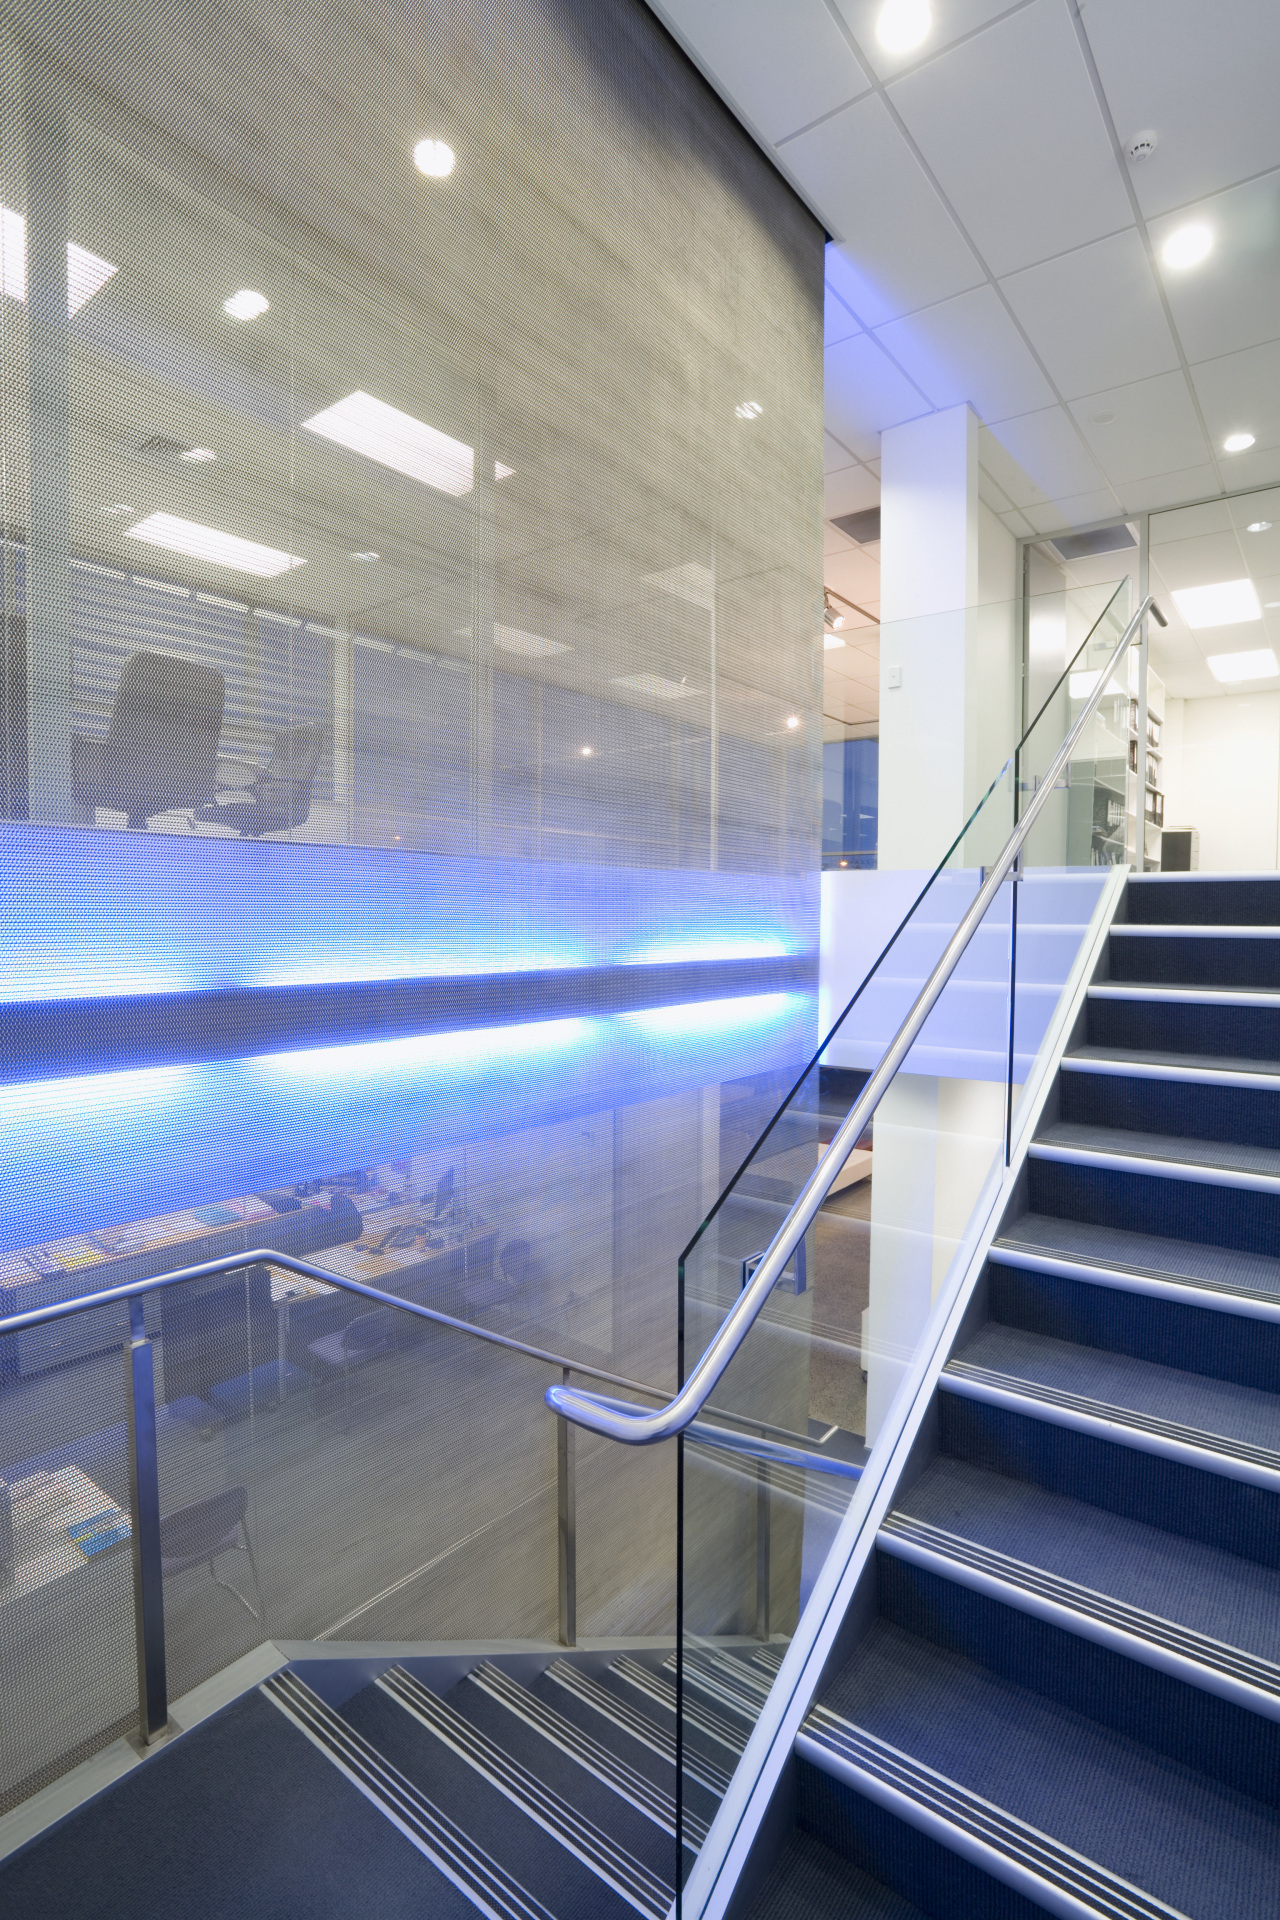 Stainless steel mesh is lit by a fluoresent architecture, ceiling, daylighting, glass, handrail, interior design, leisure centre, line, stairs, structure, gray, blue